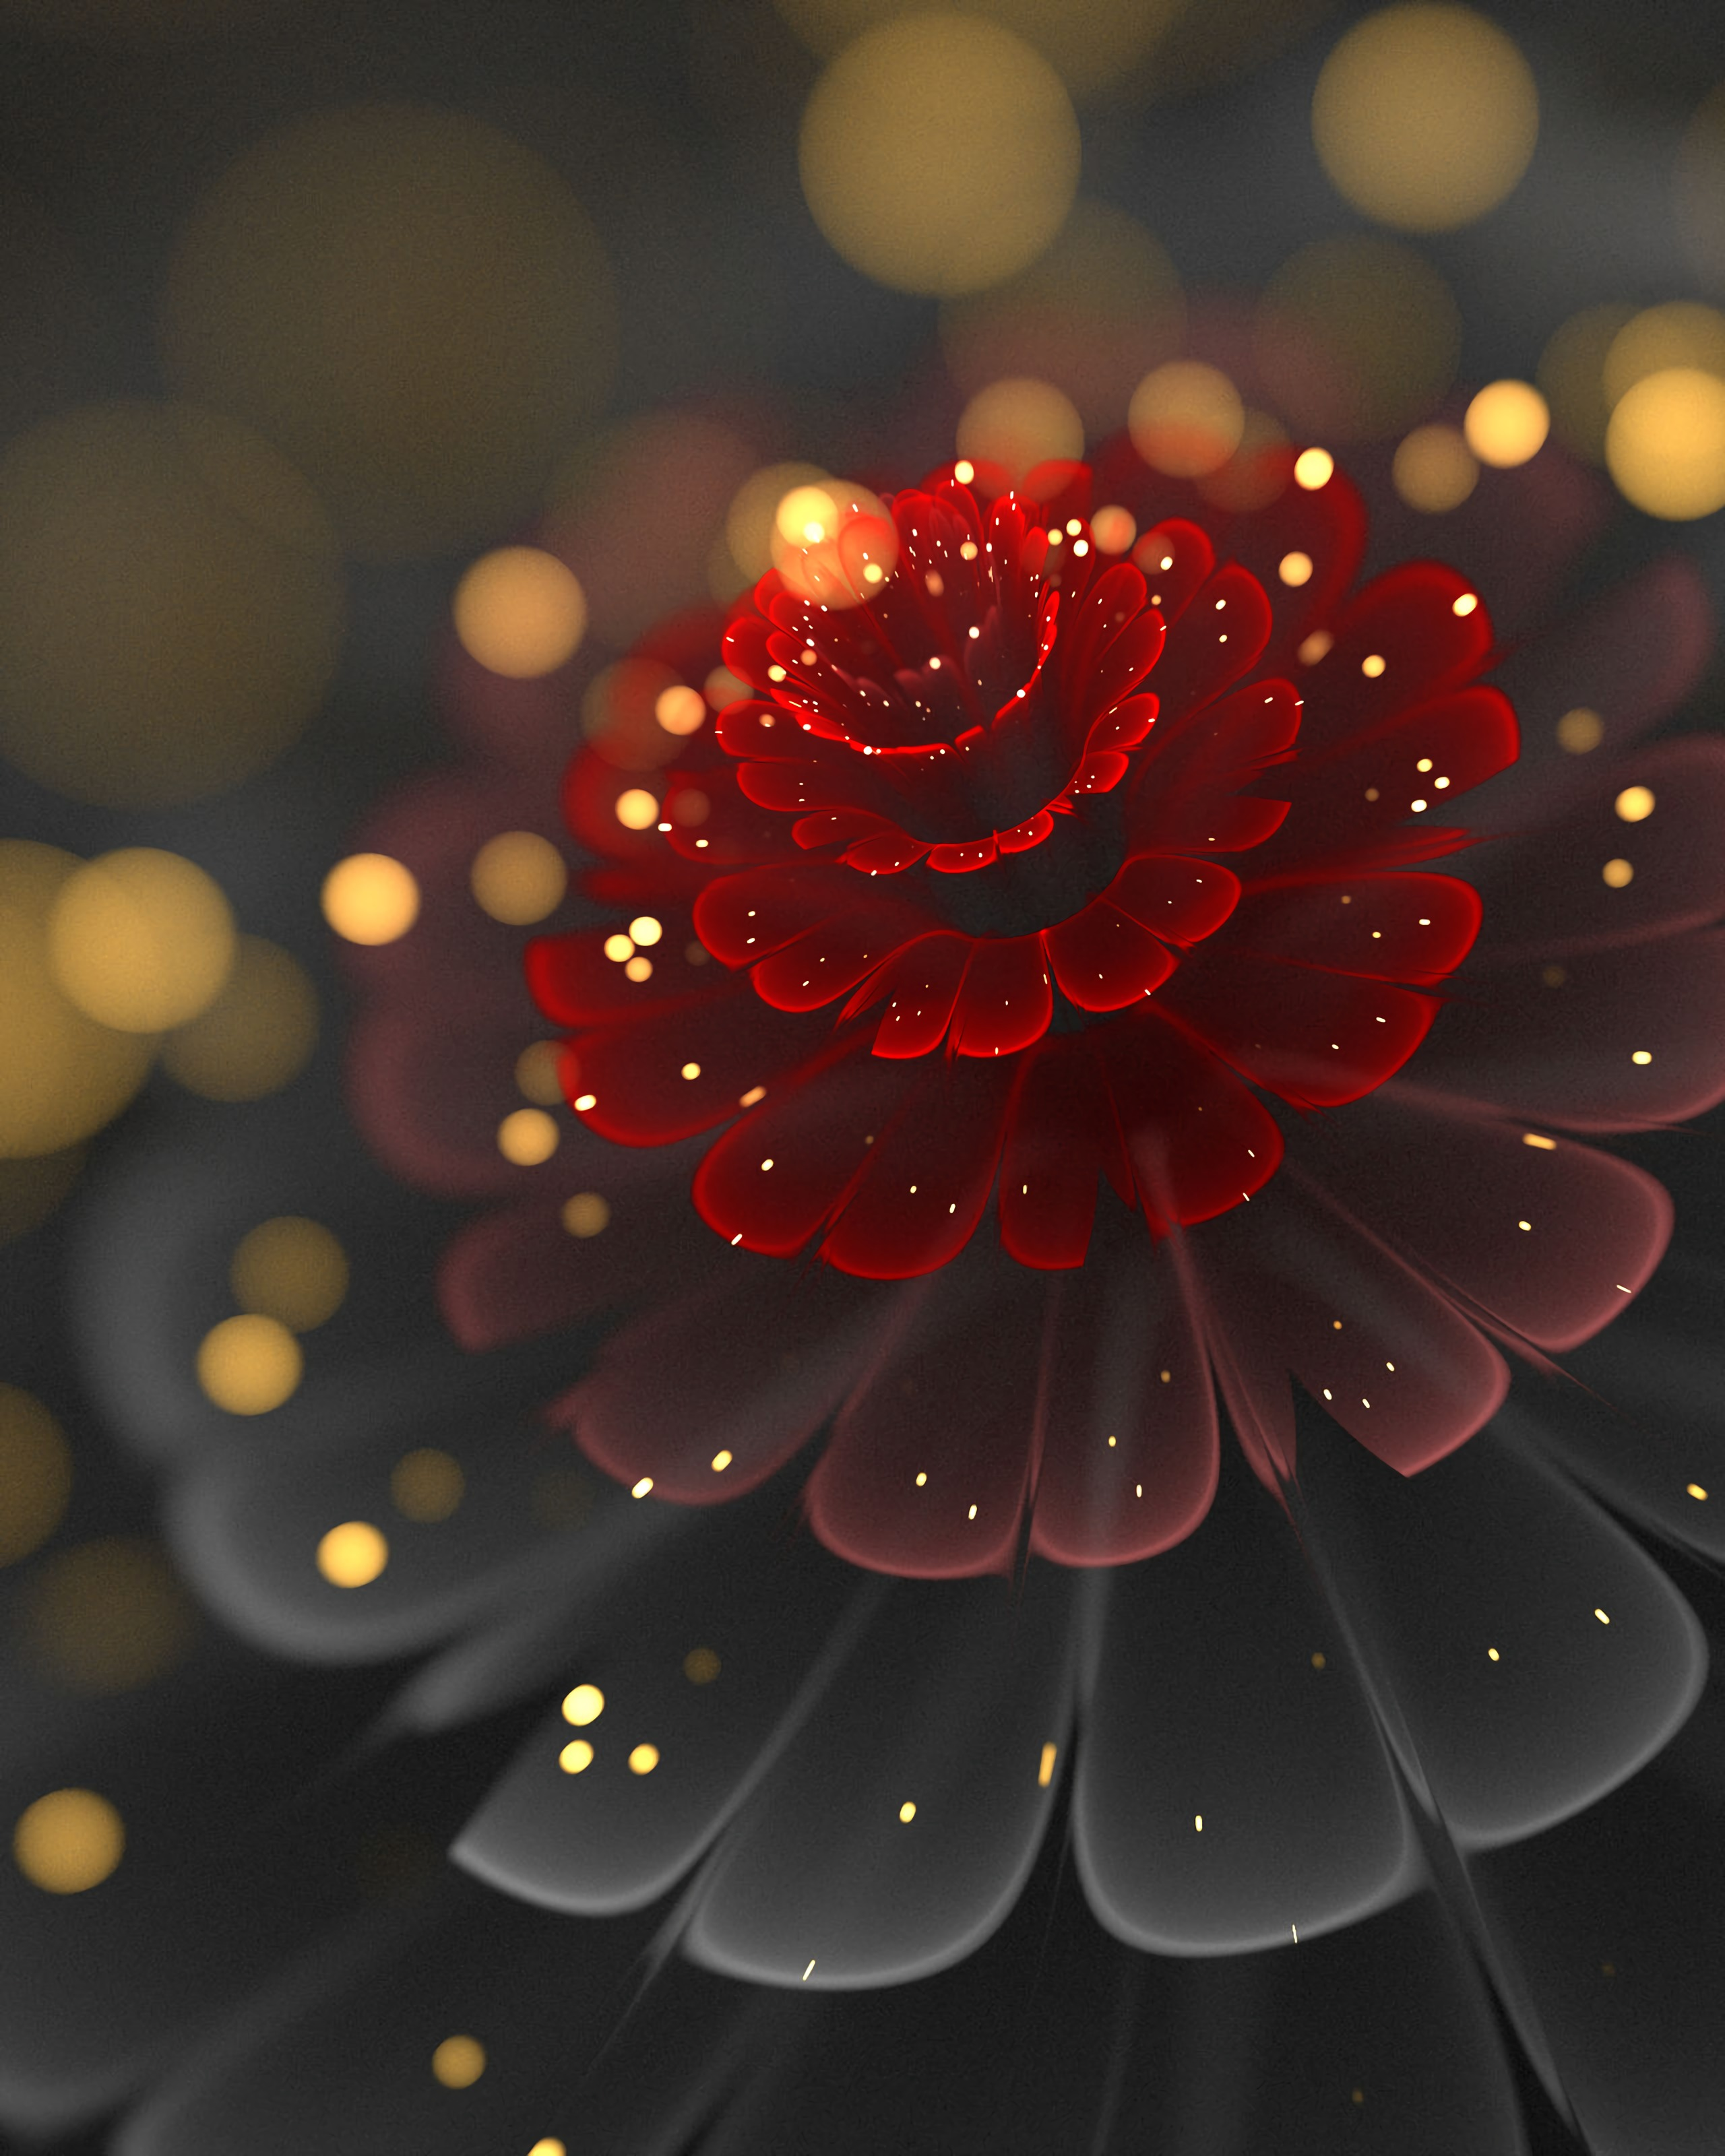 79756 download wallpaper Abstract, Flower, Glare, Shine, Brilliance, Fractal screensavers and pictures for free